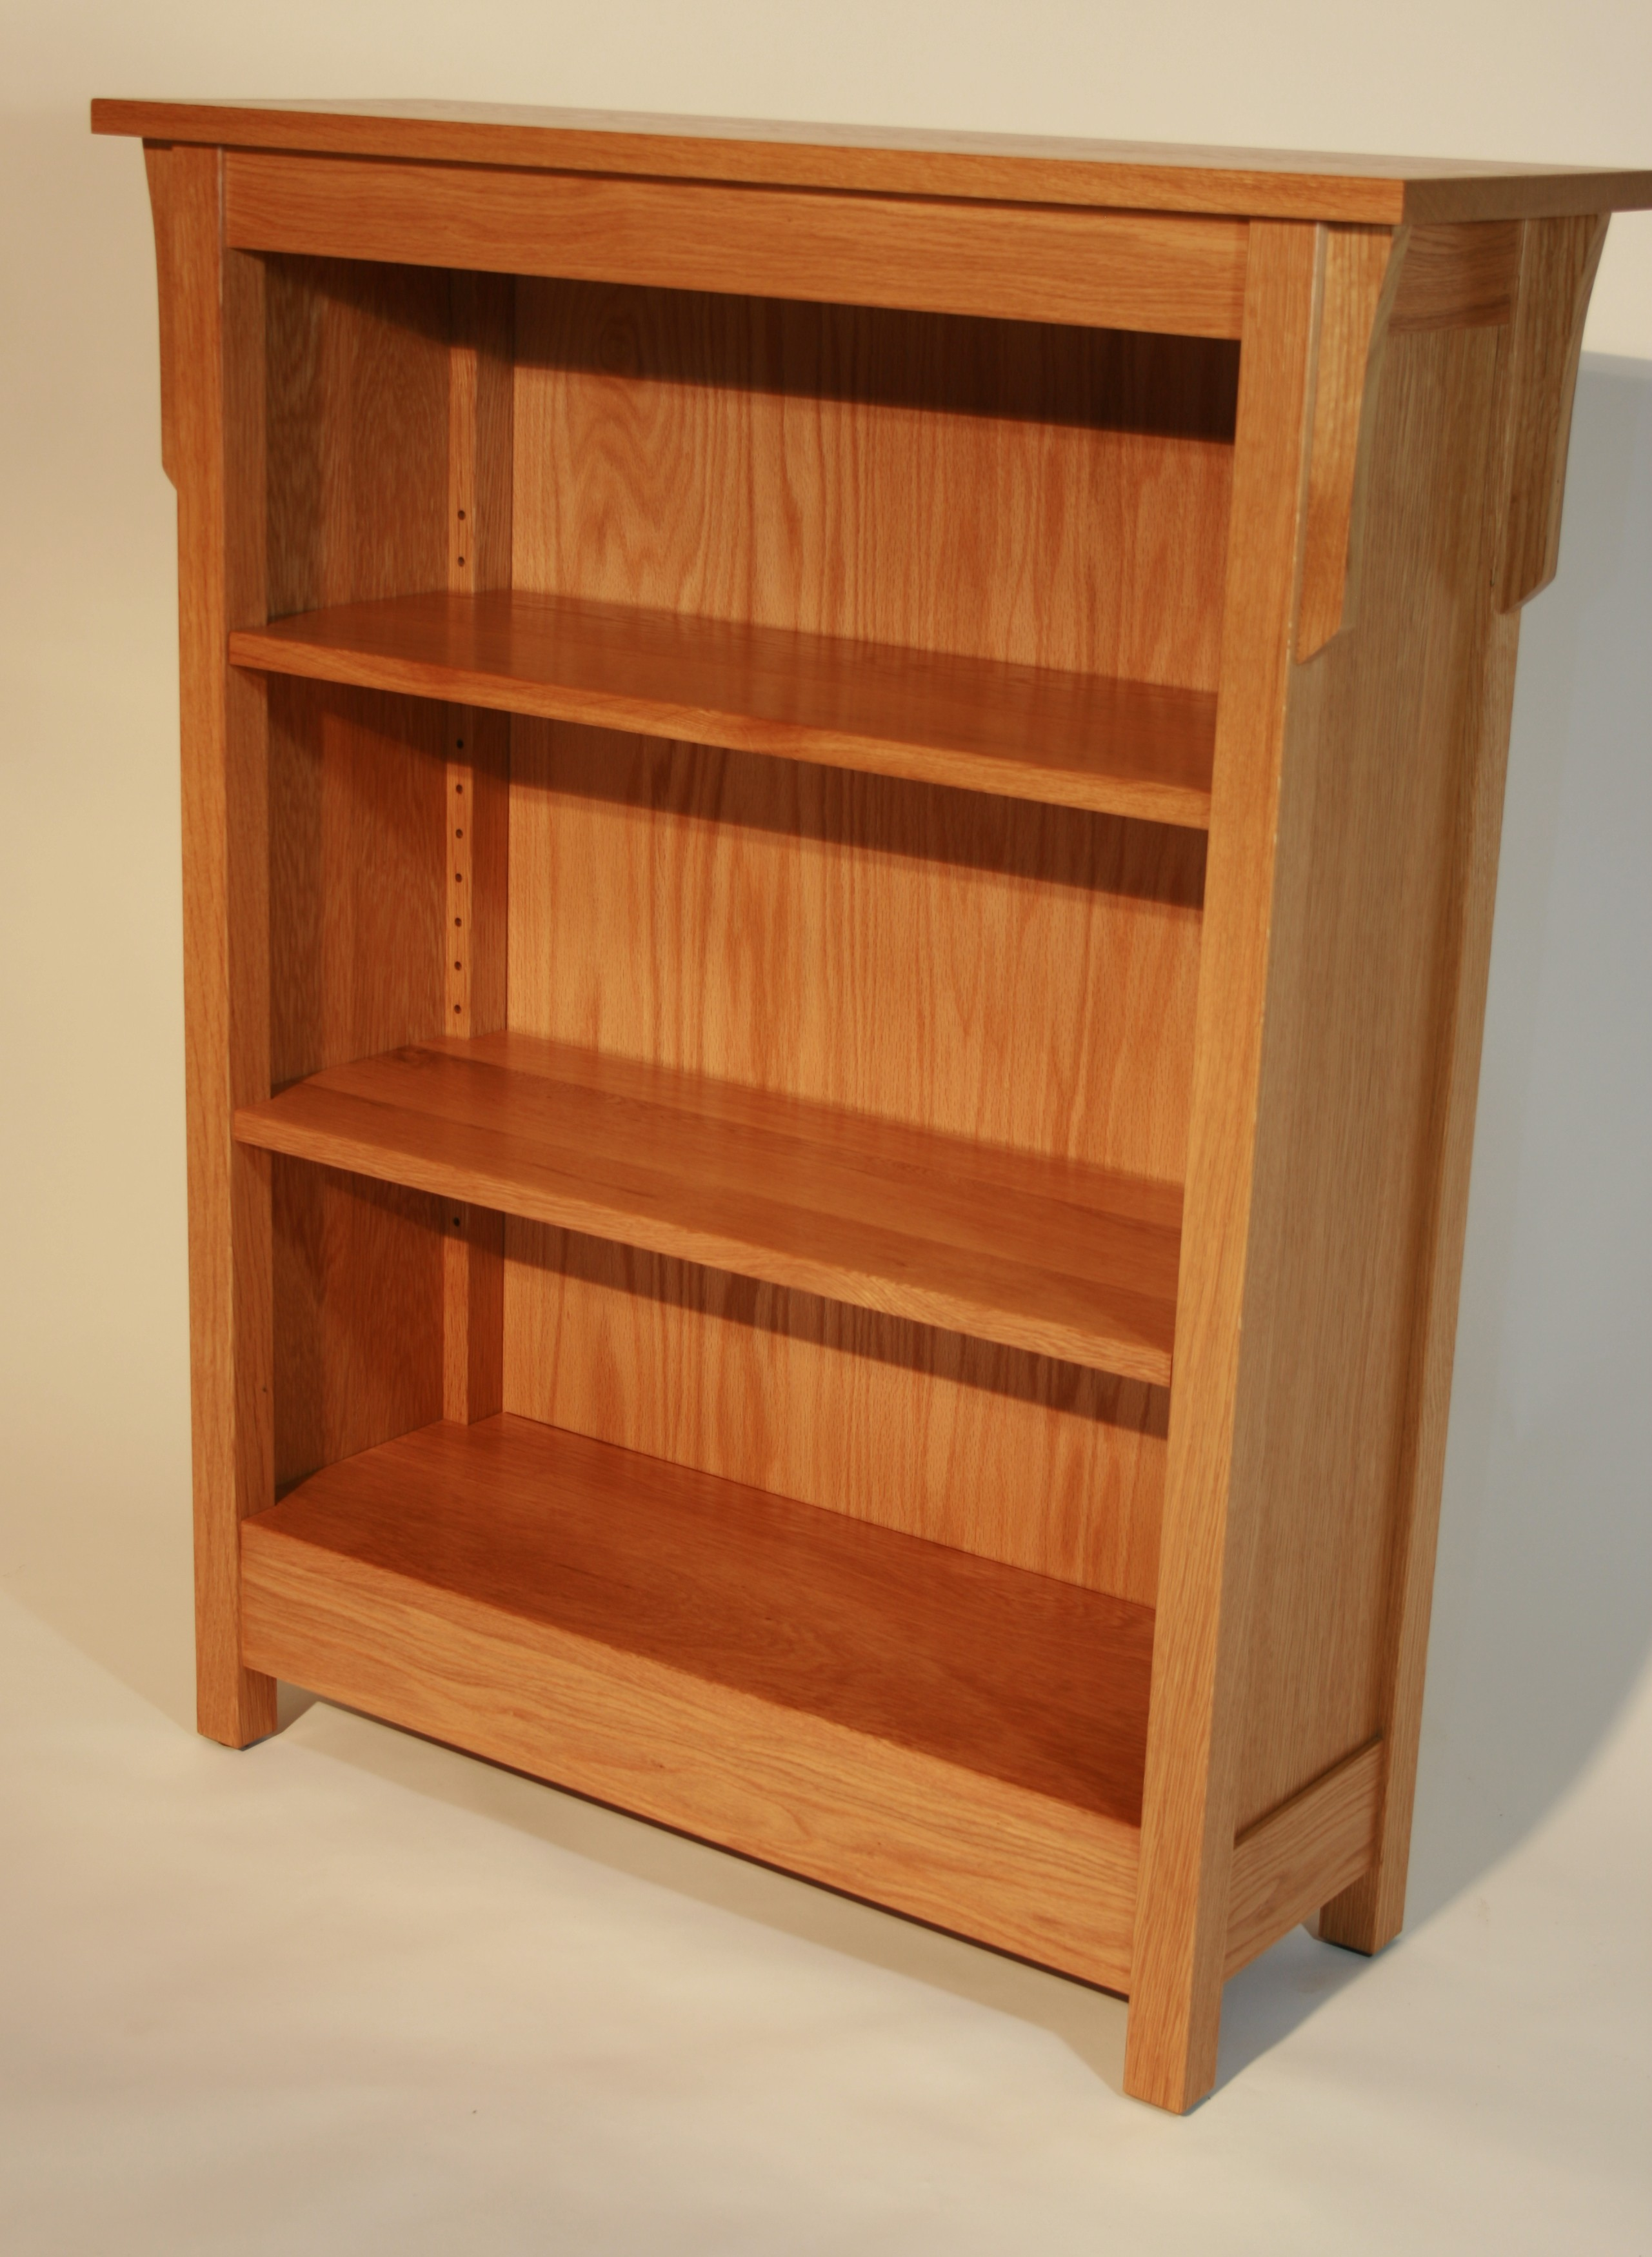 office inch supplies wide shelf today all product csii mayline overstock free bookcases bookcase steel shipping